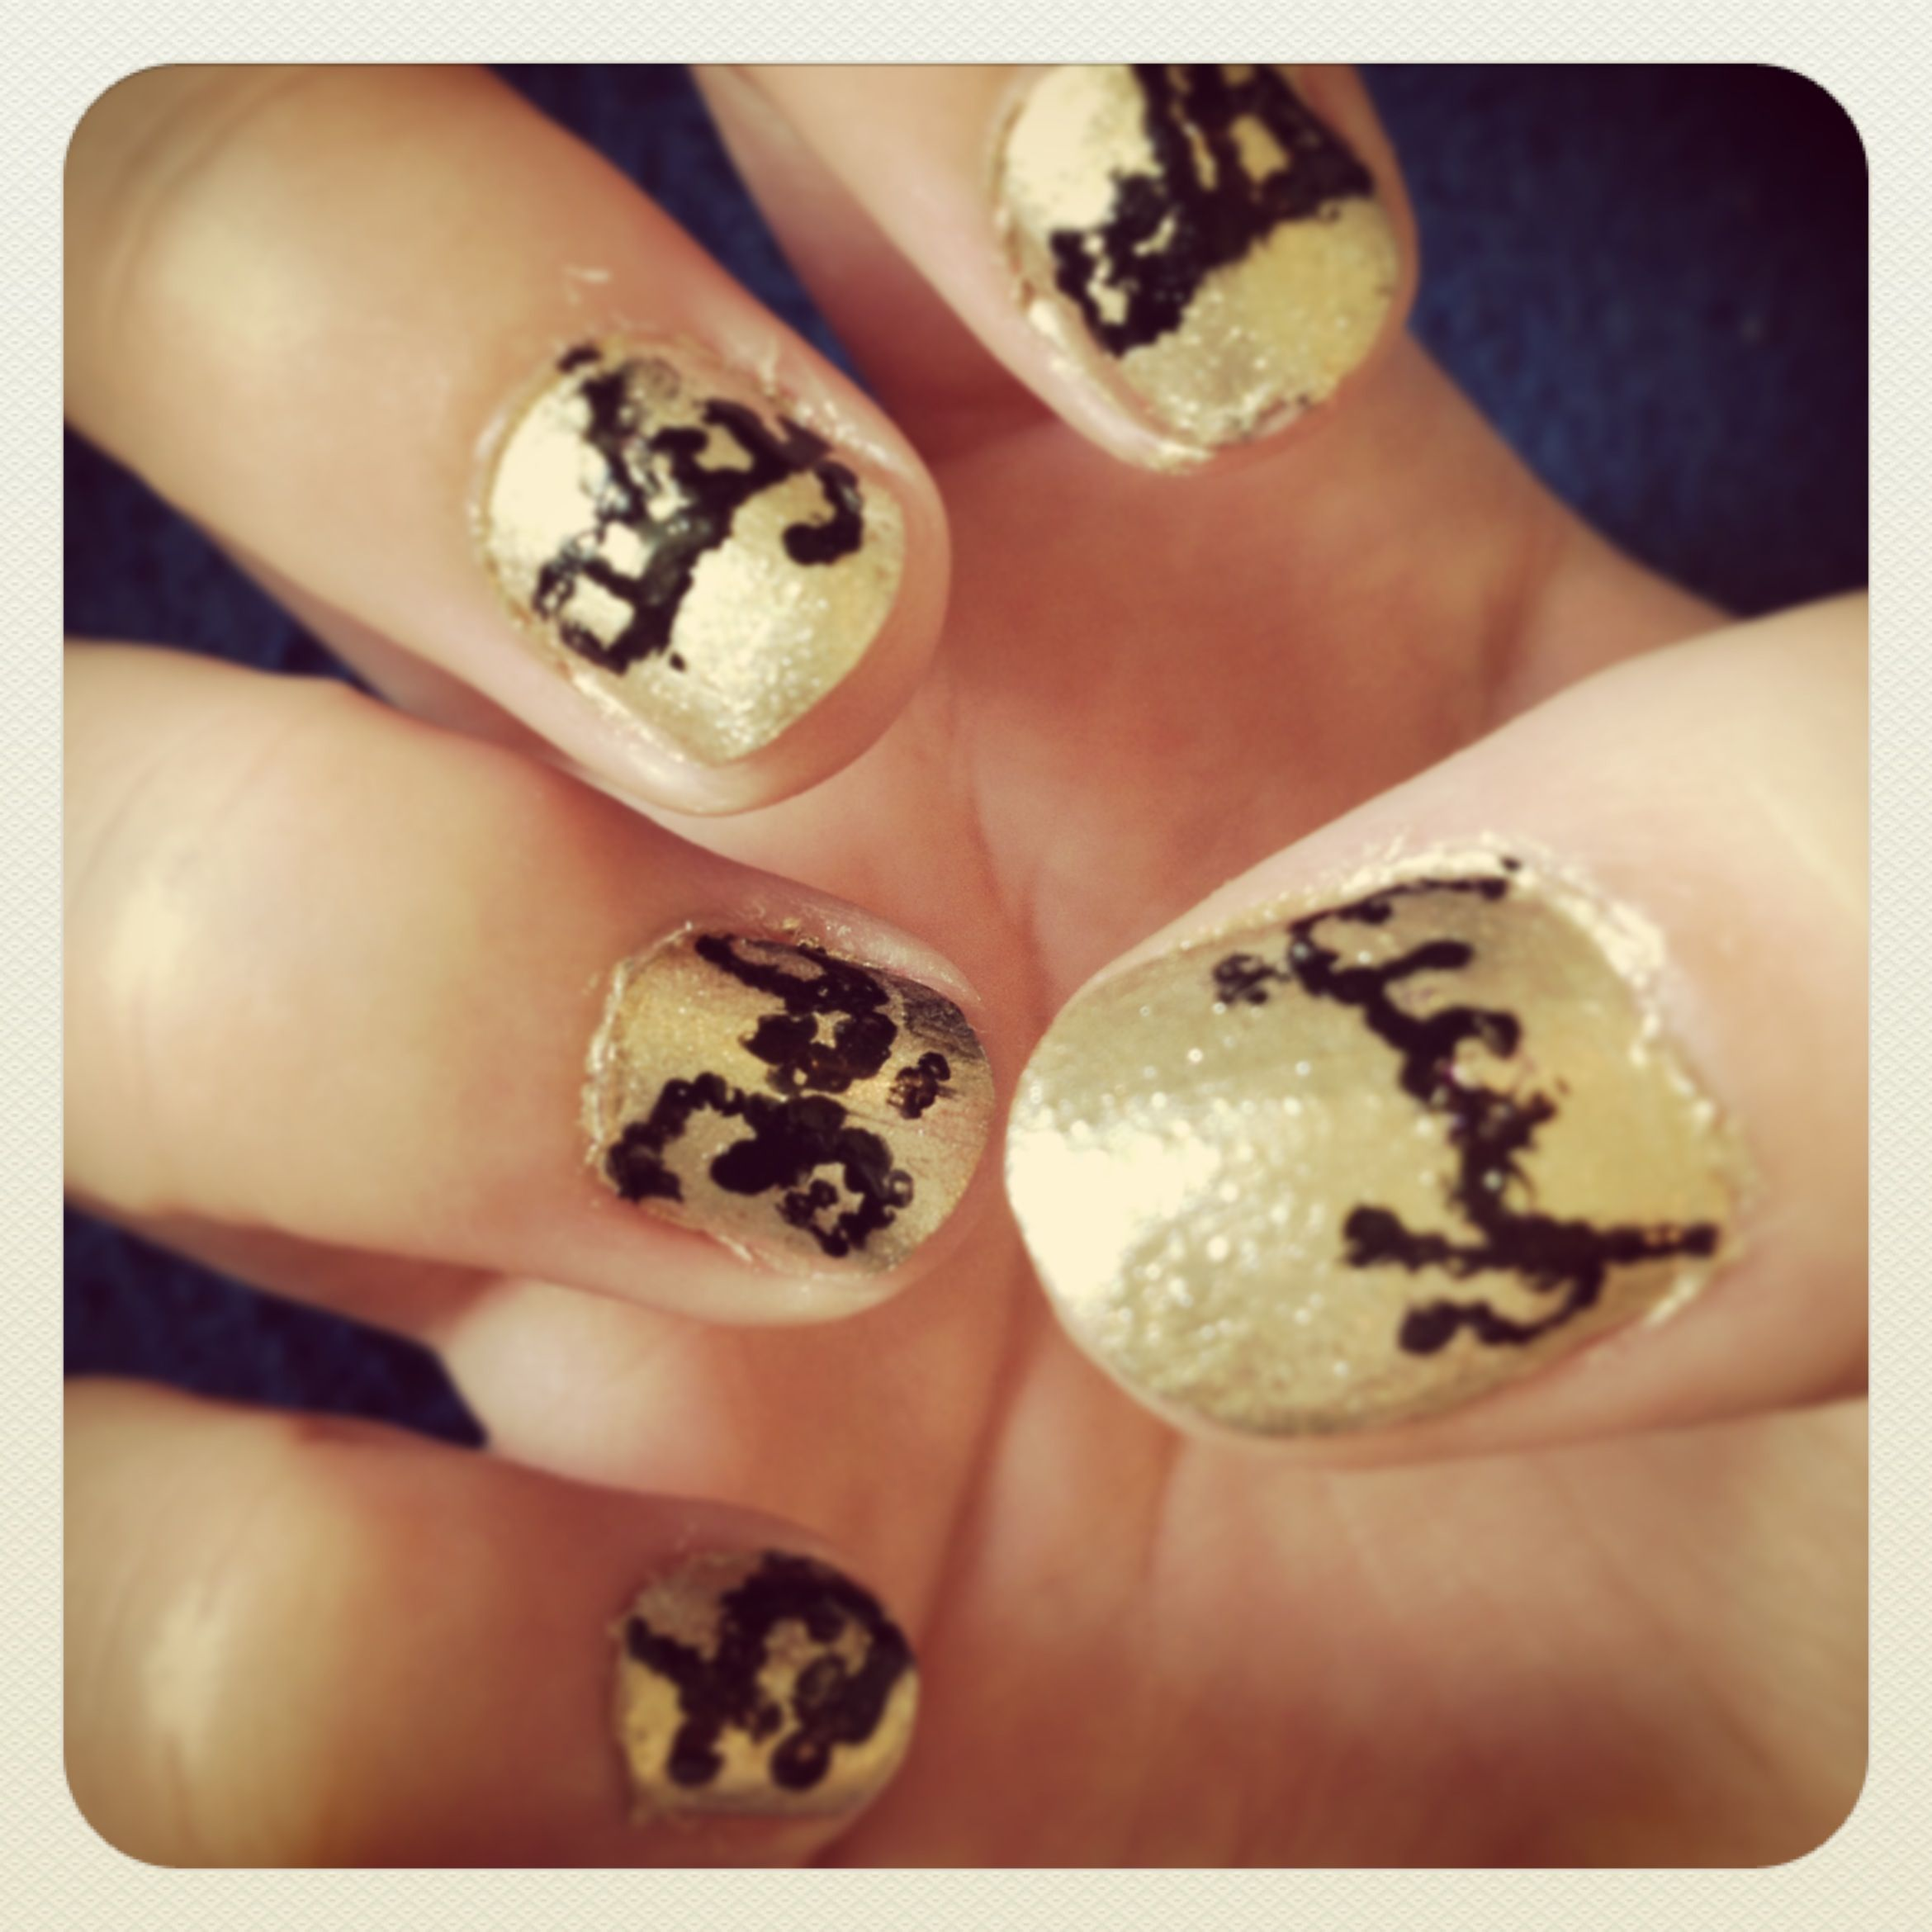 Lord of the rings nail art. One ring to rule them all in Elvish ...